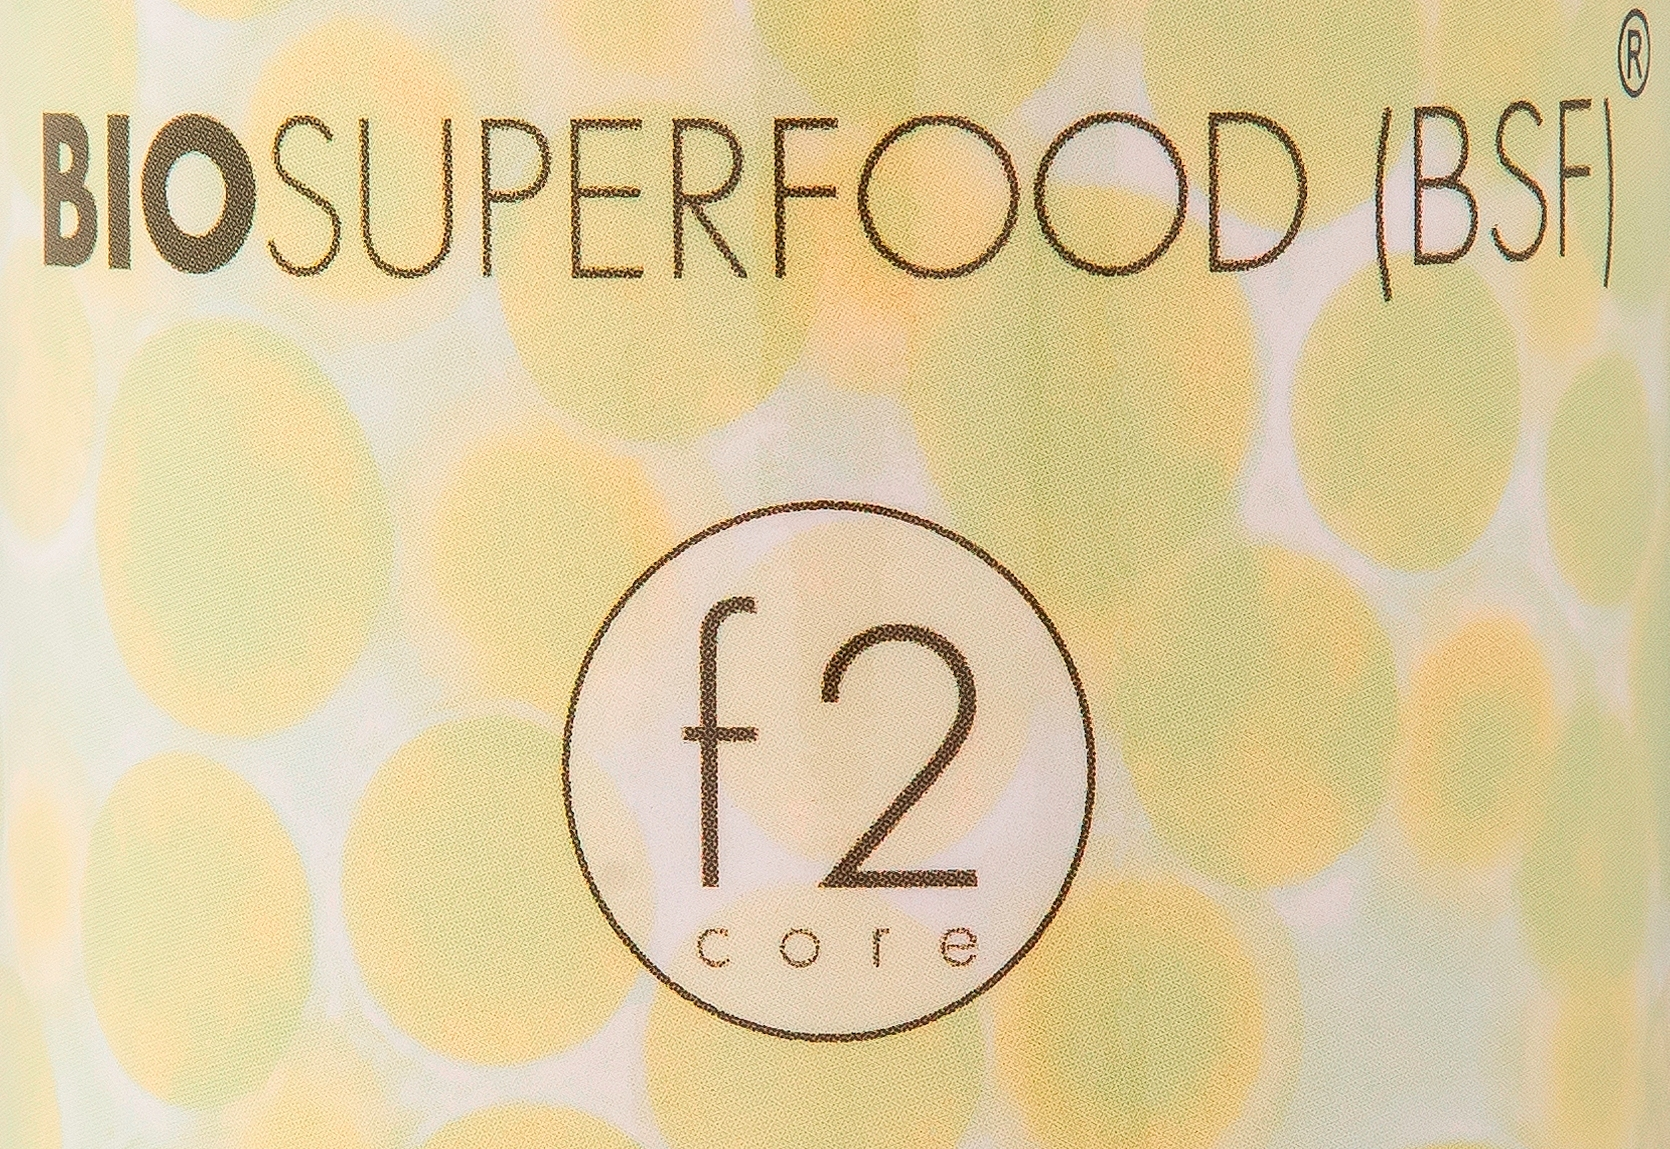 BioSuperfood f2 core